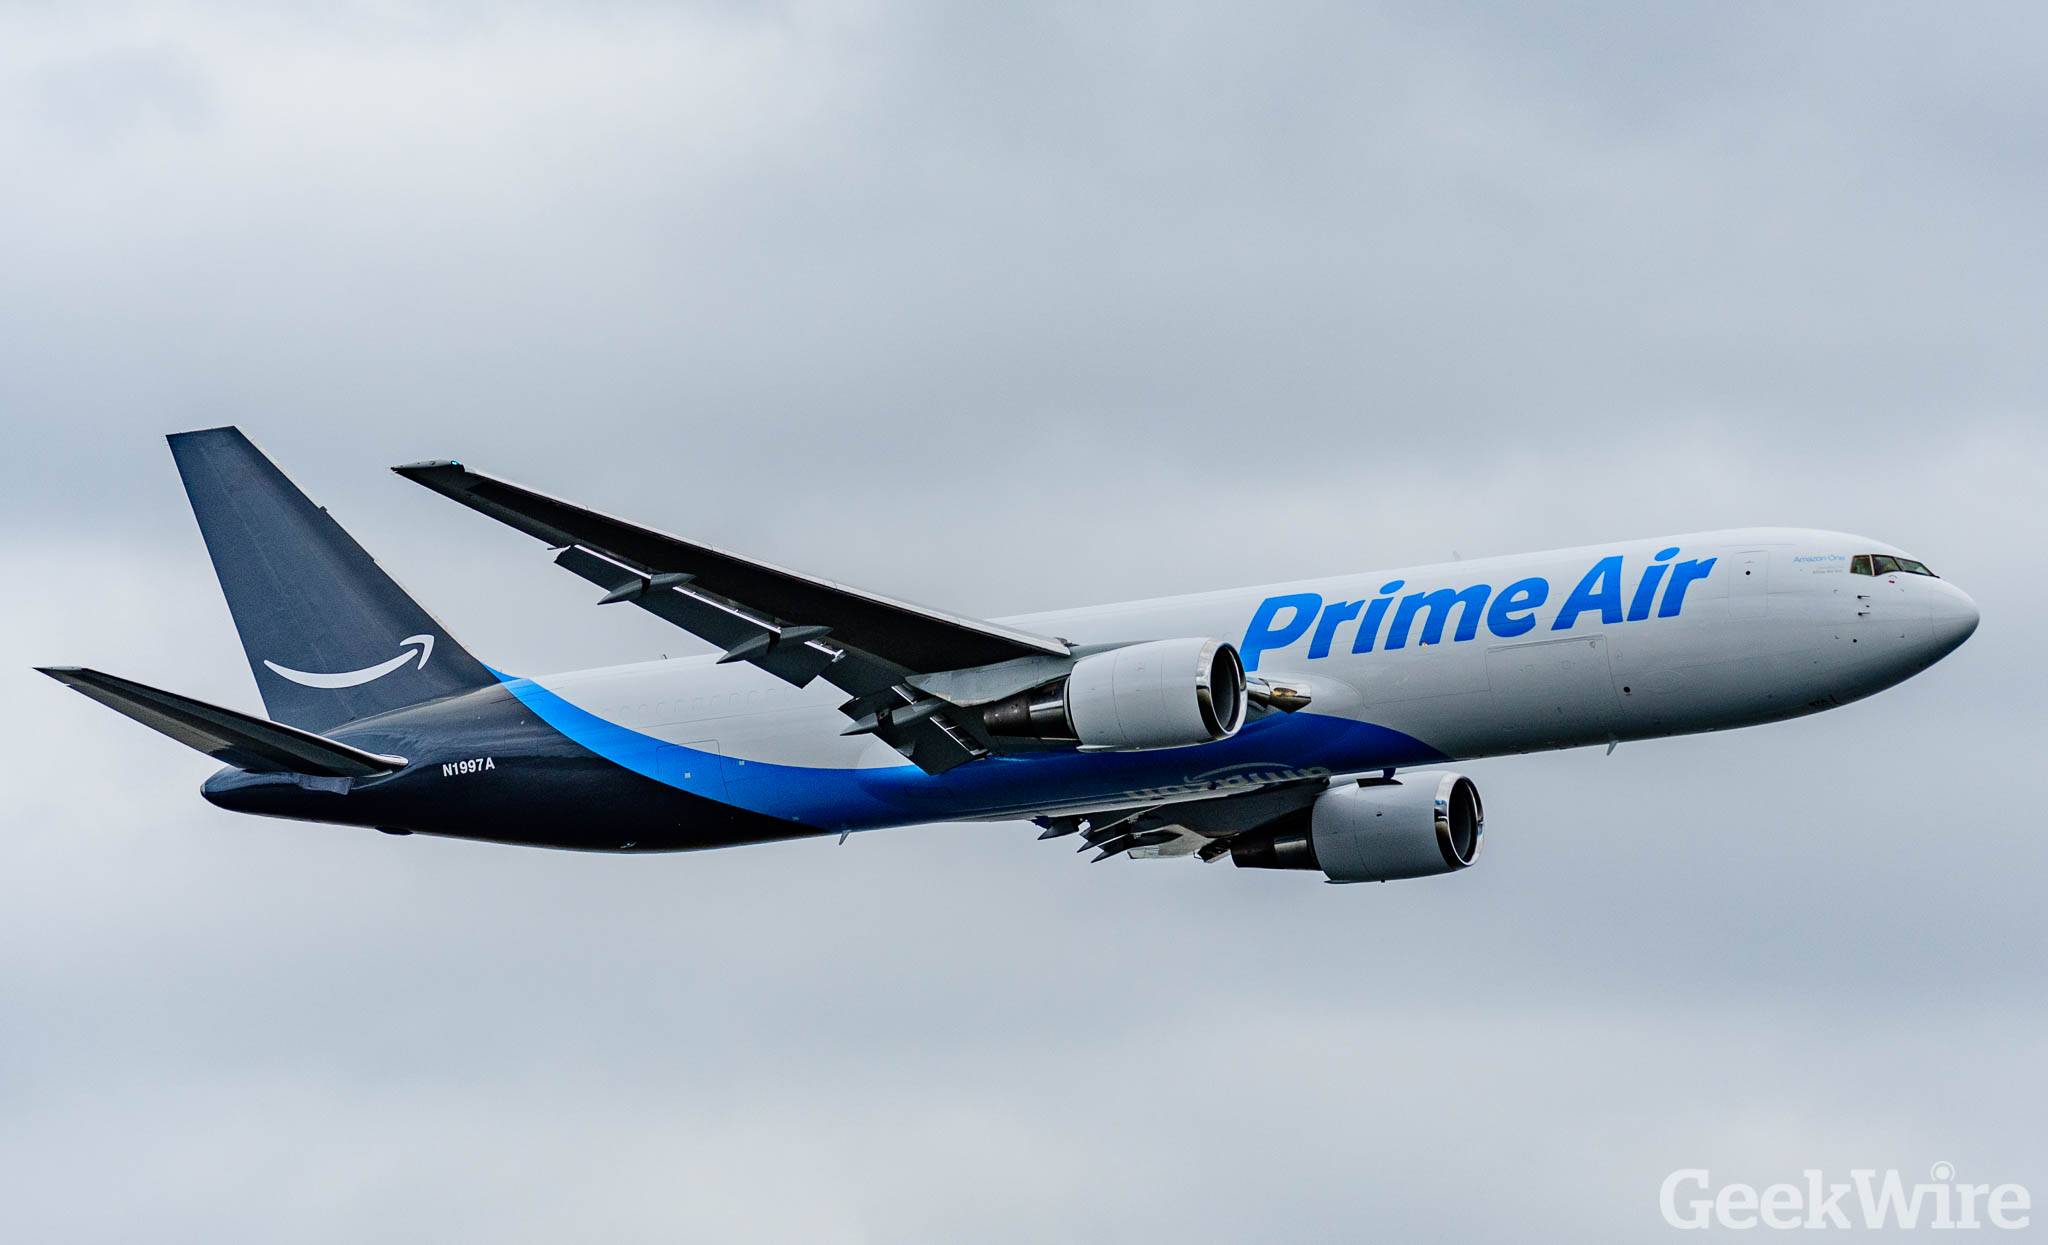 Prime Air pilots to protest outside Amazon's Seattle HQ for